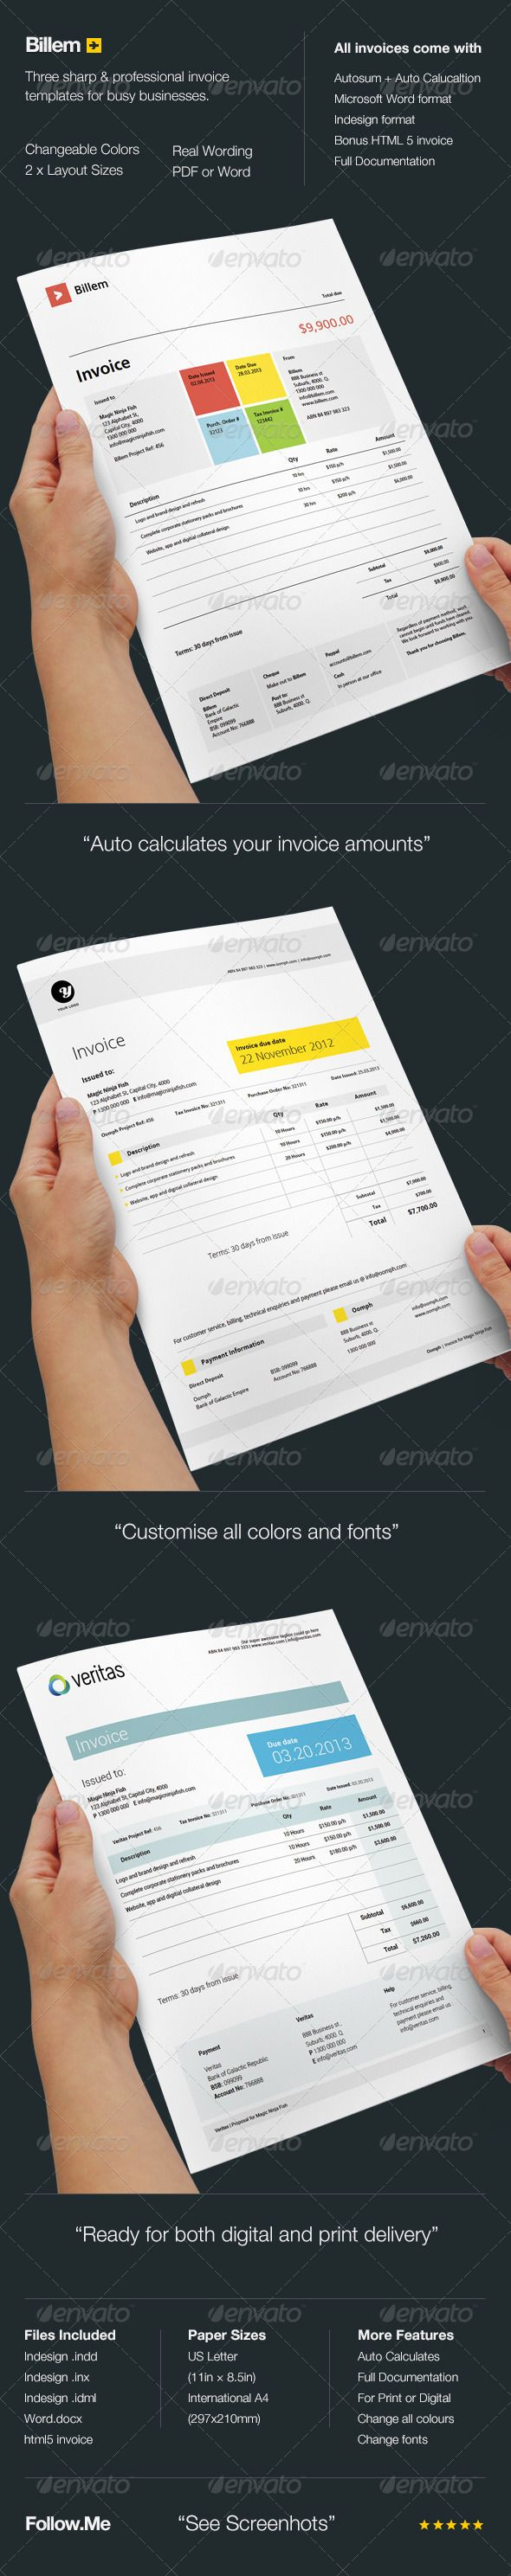 Billem - Invoice Templates $6